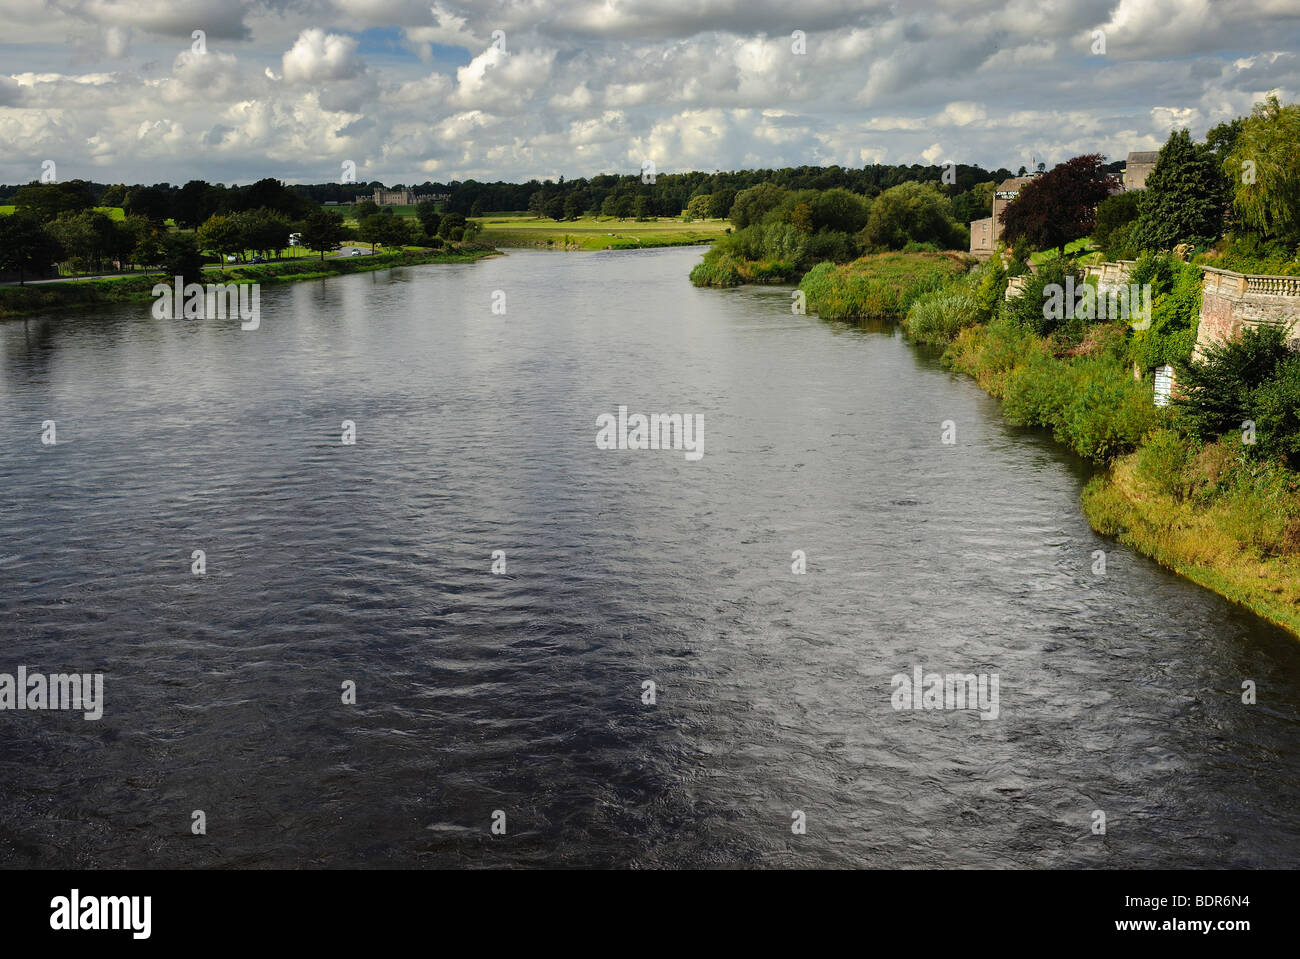 Junction Pool on the River Tweed at Kelso, Scotland, United Kingdom - Stock Image